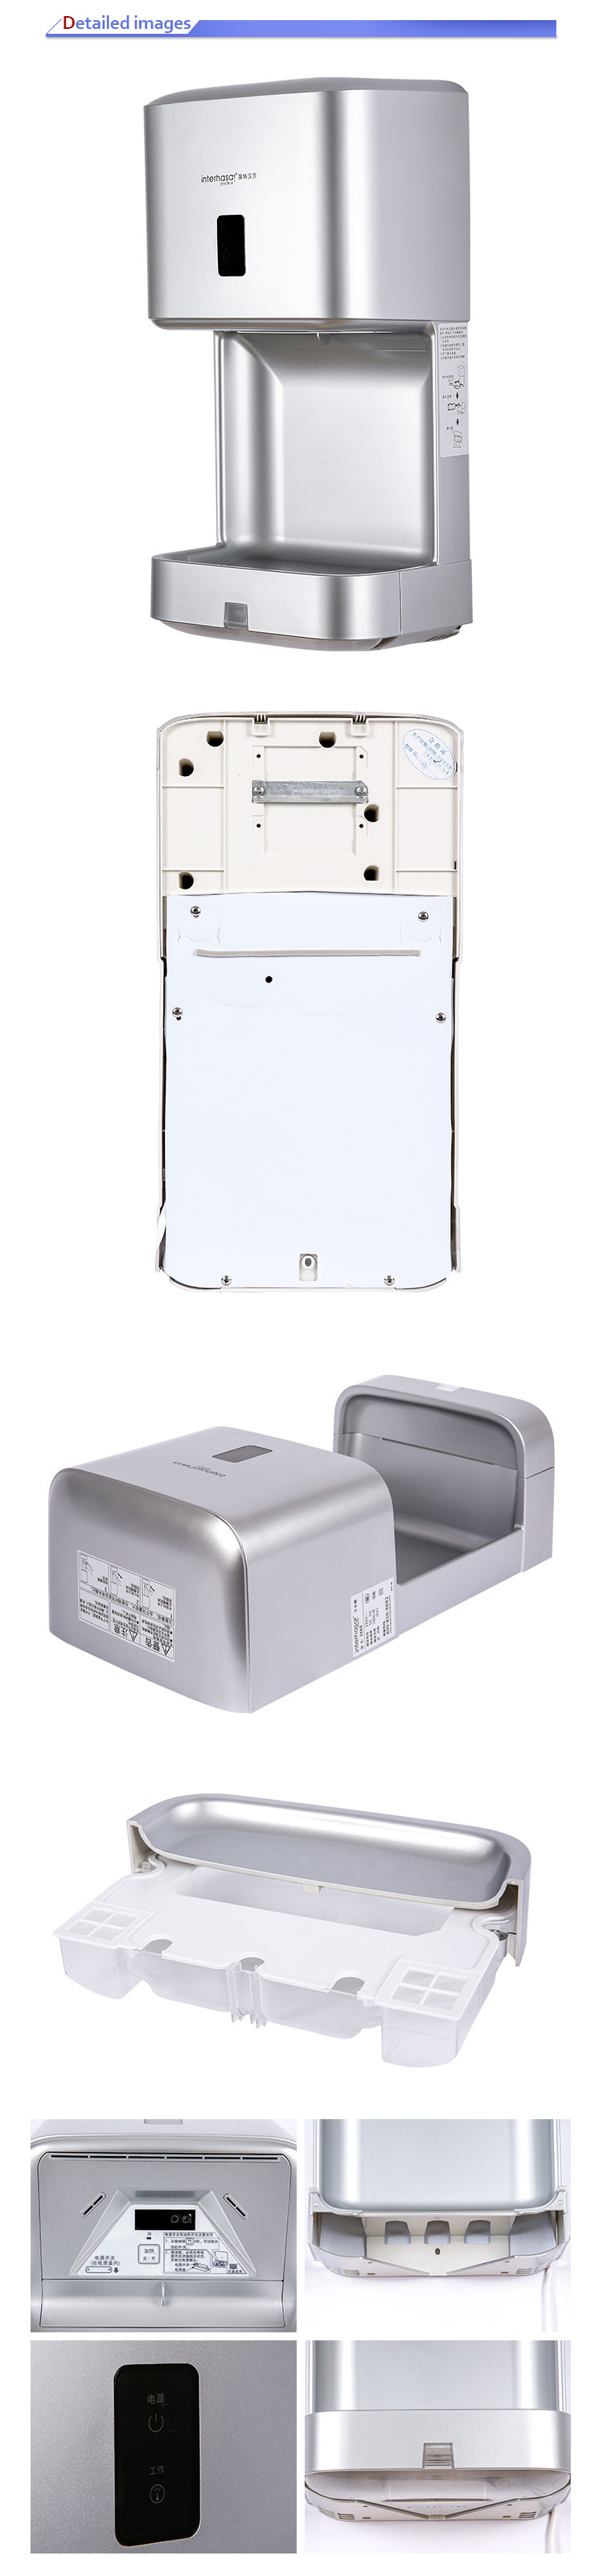 Smart Expo Wall Mounted Automatic High Speed Toilet